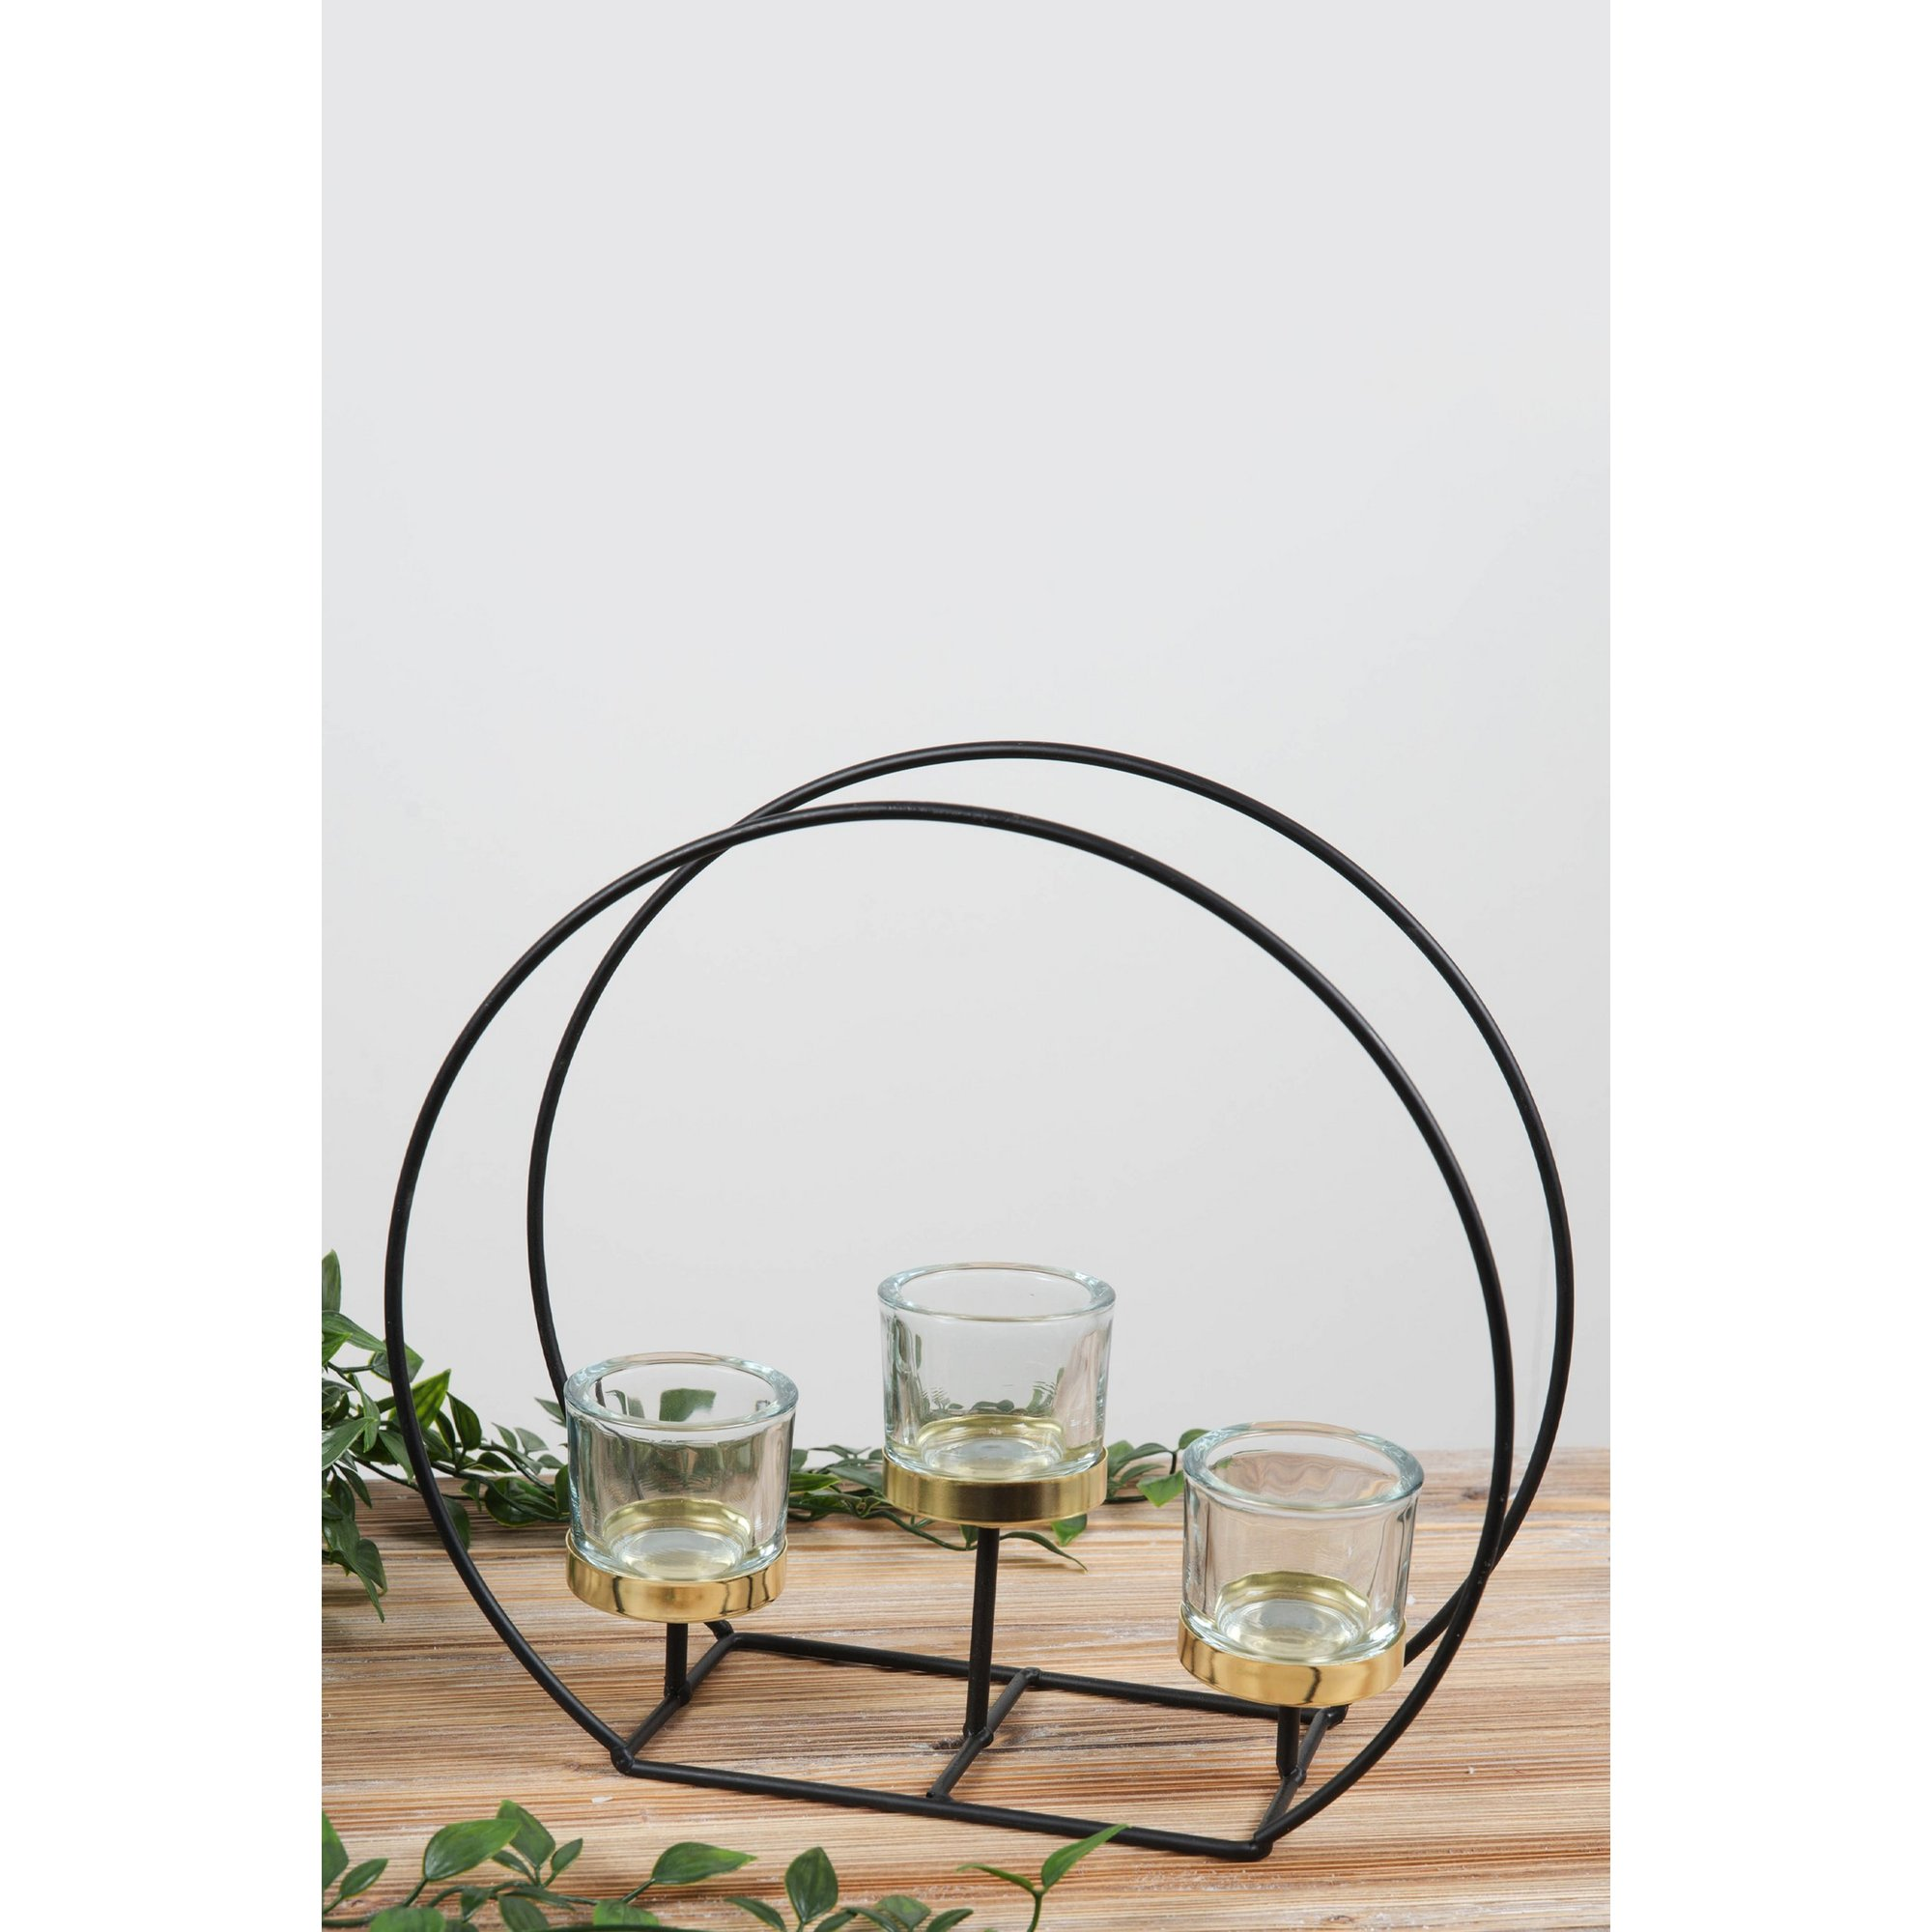 Image of Glass Tealight Holder on Round Stand